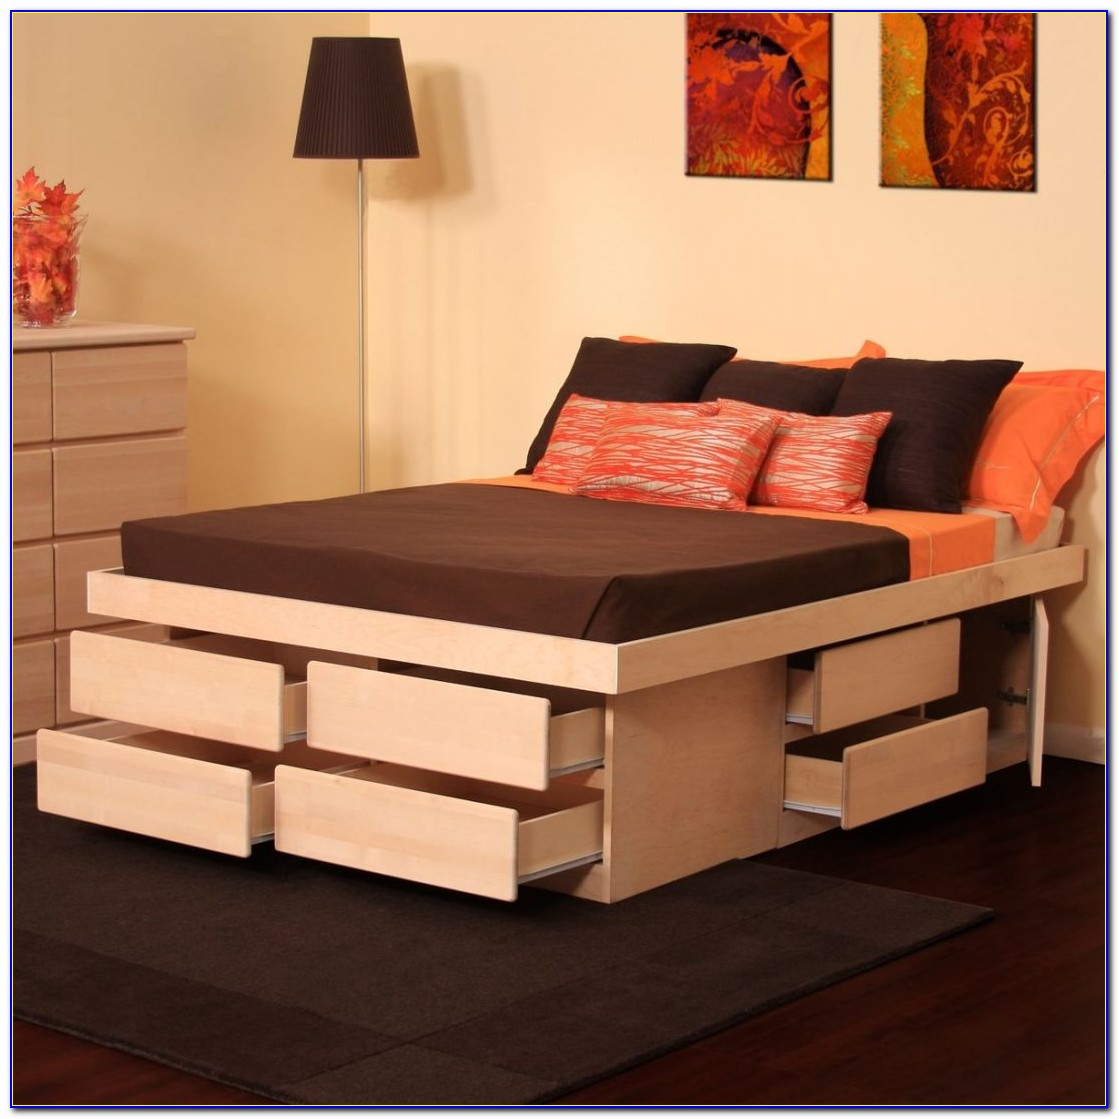 King Size Bed Headboard With Drawers